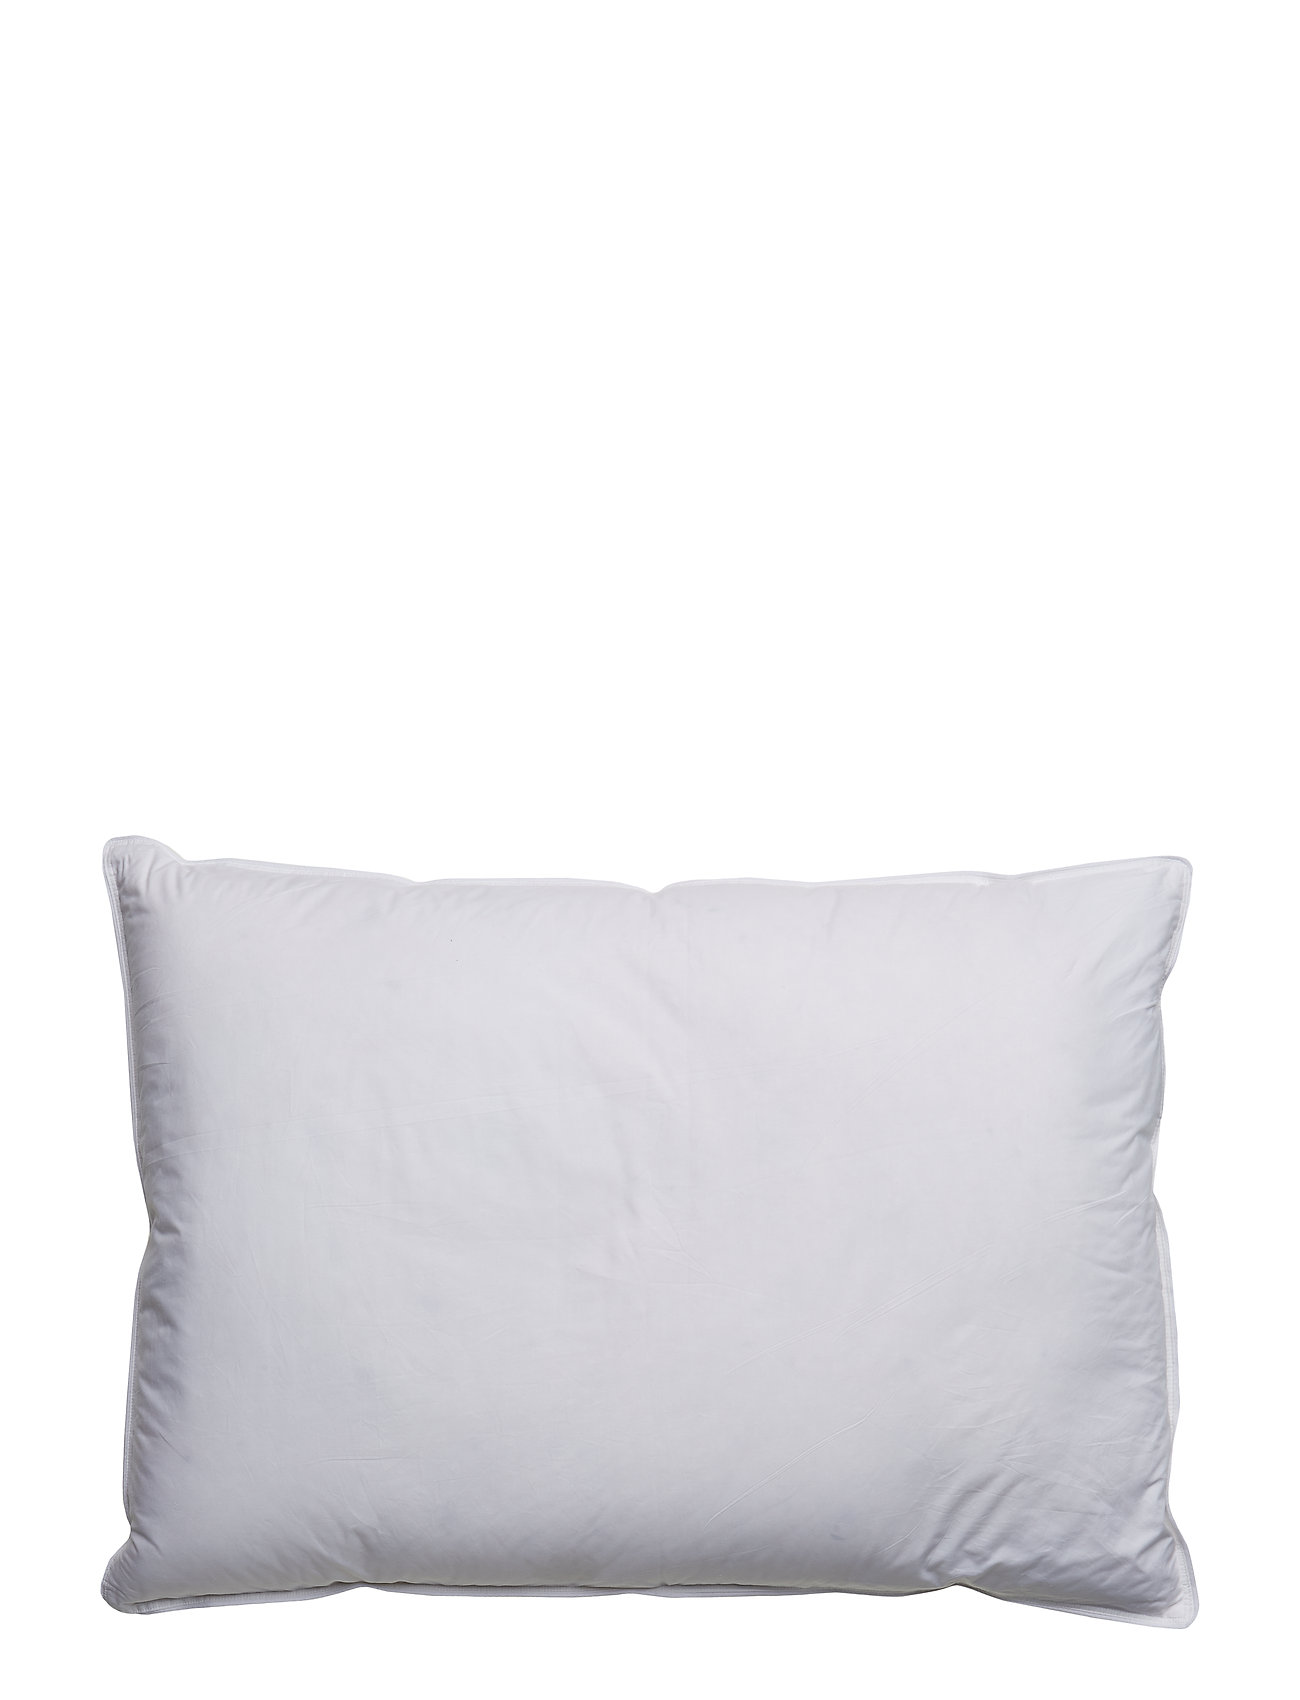 Denmark Of Nænsom Medium 3 PillowwhiteQuilts Chamber Qrsthd